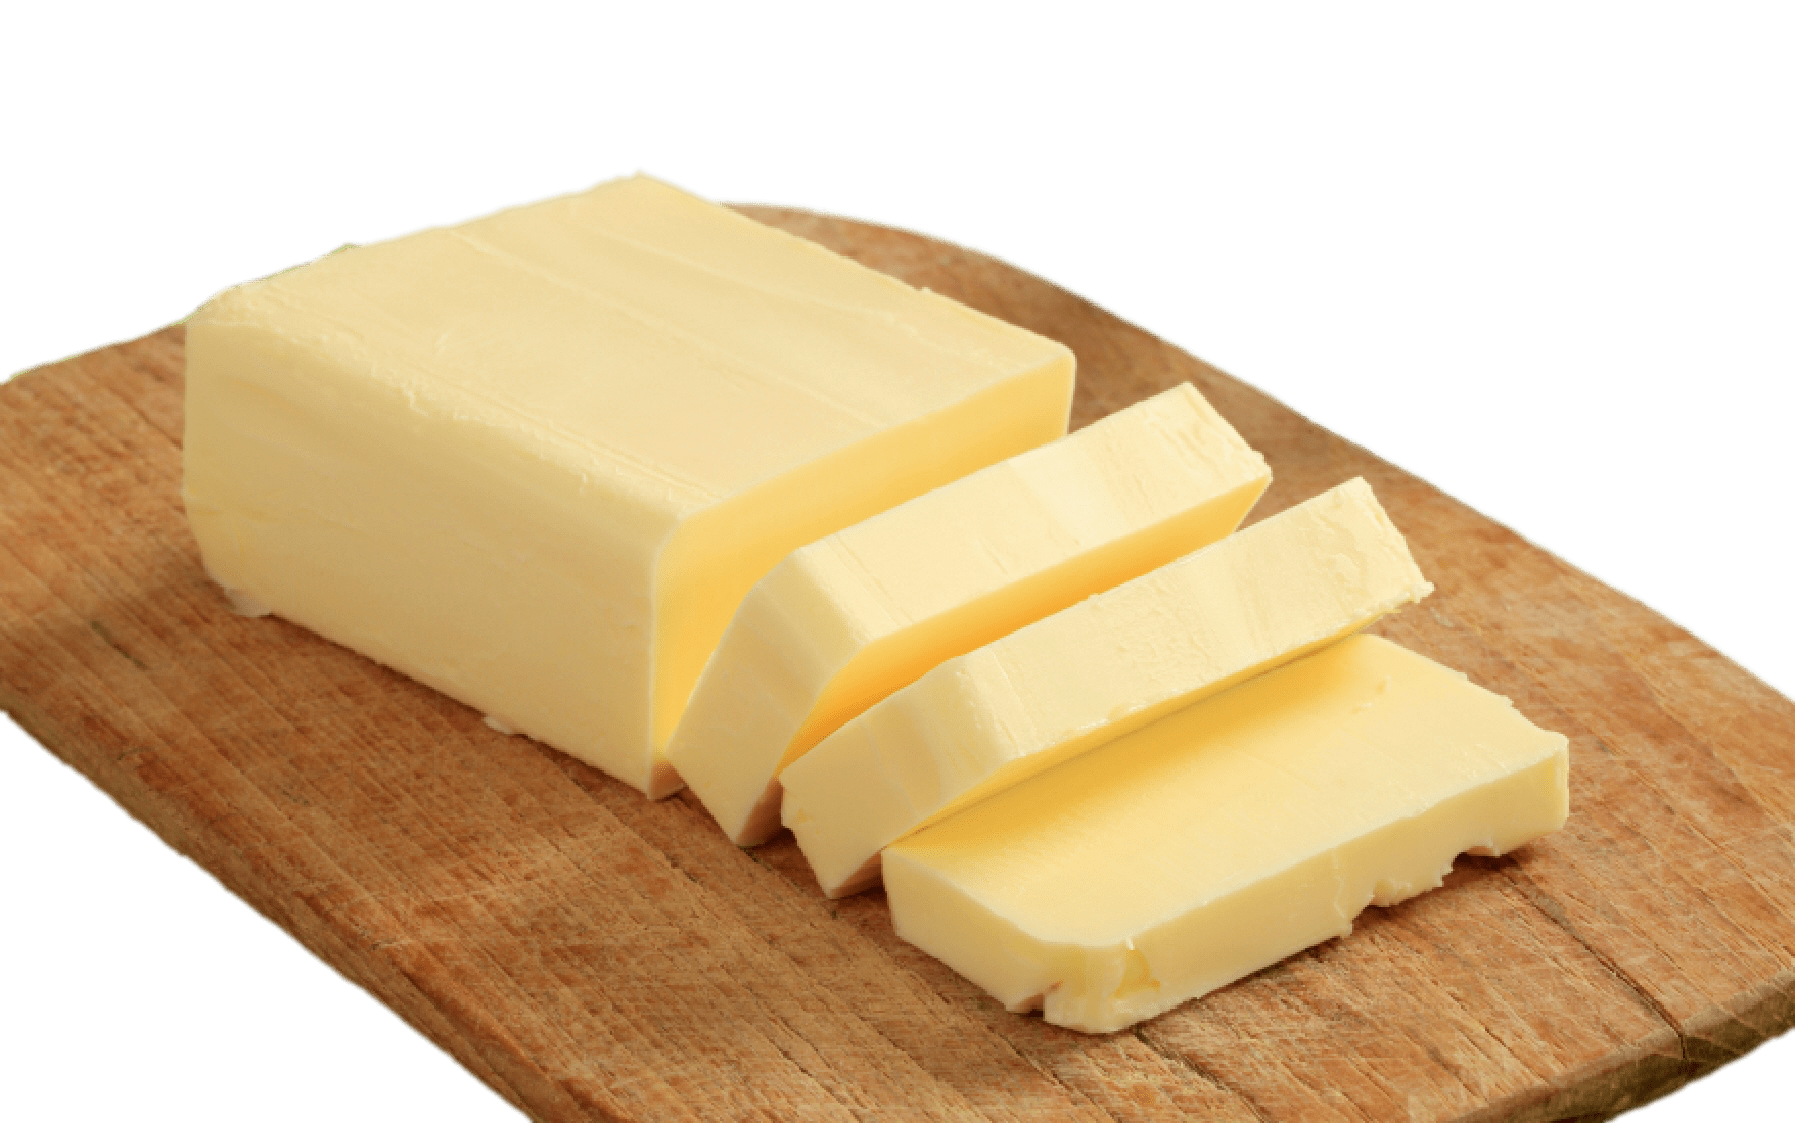 Butter png. On wooden plank transparent